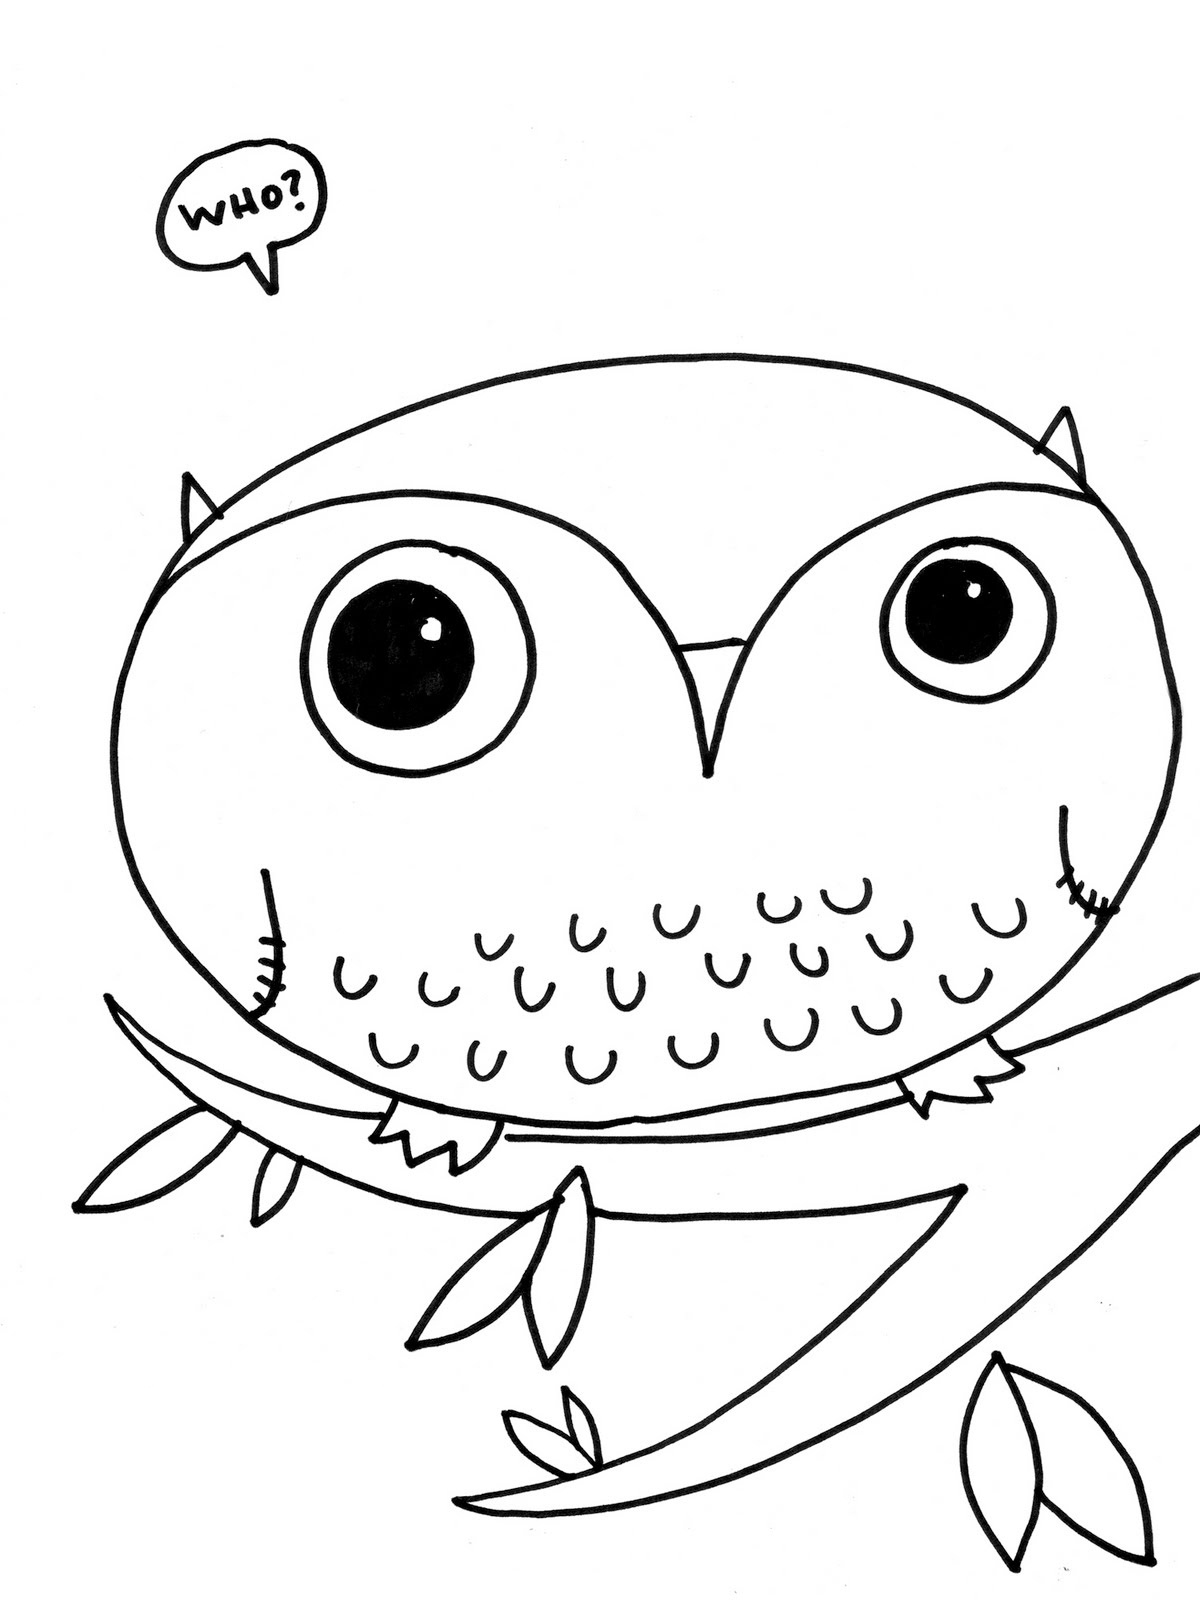 printable owl images free cute baby owl coloring pages download free clip art printable owl images